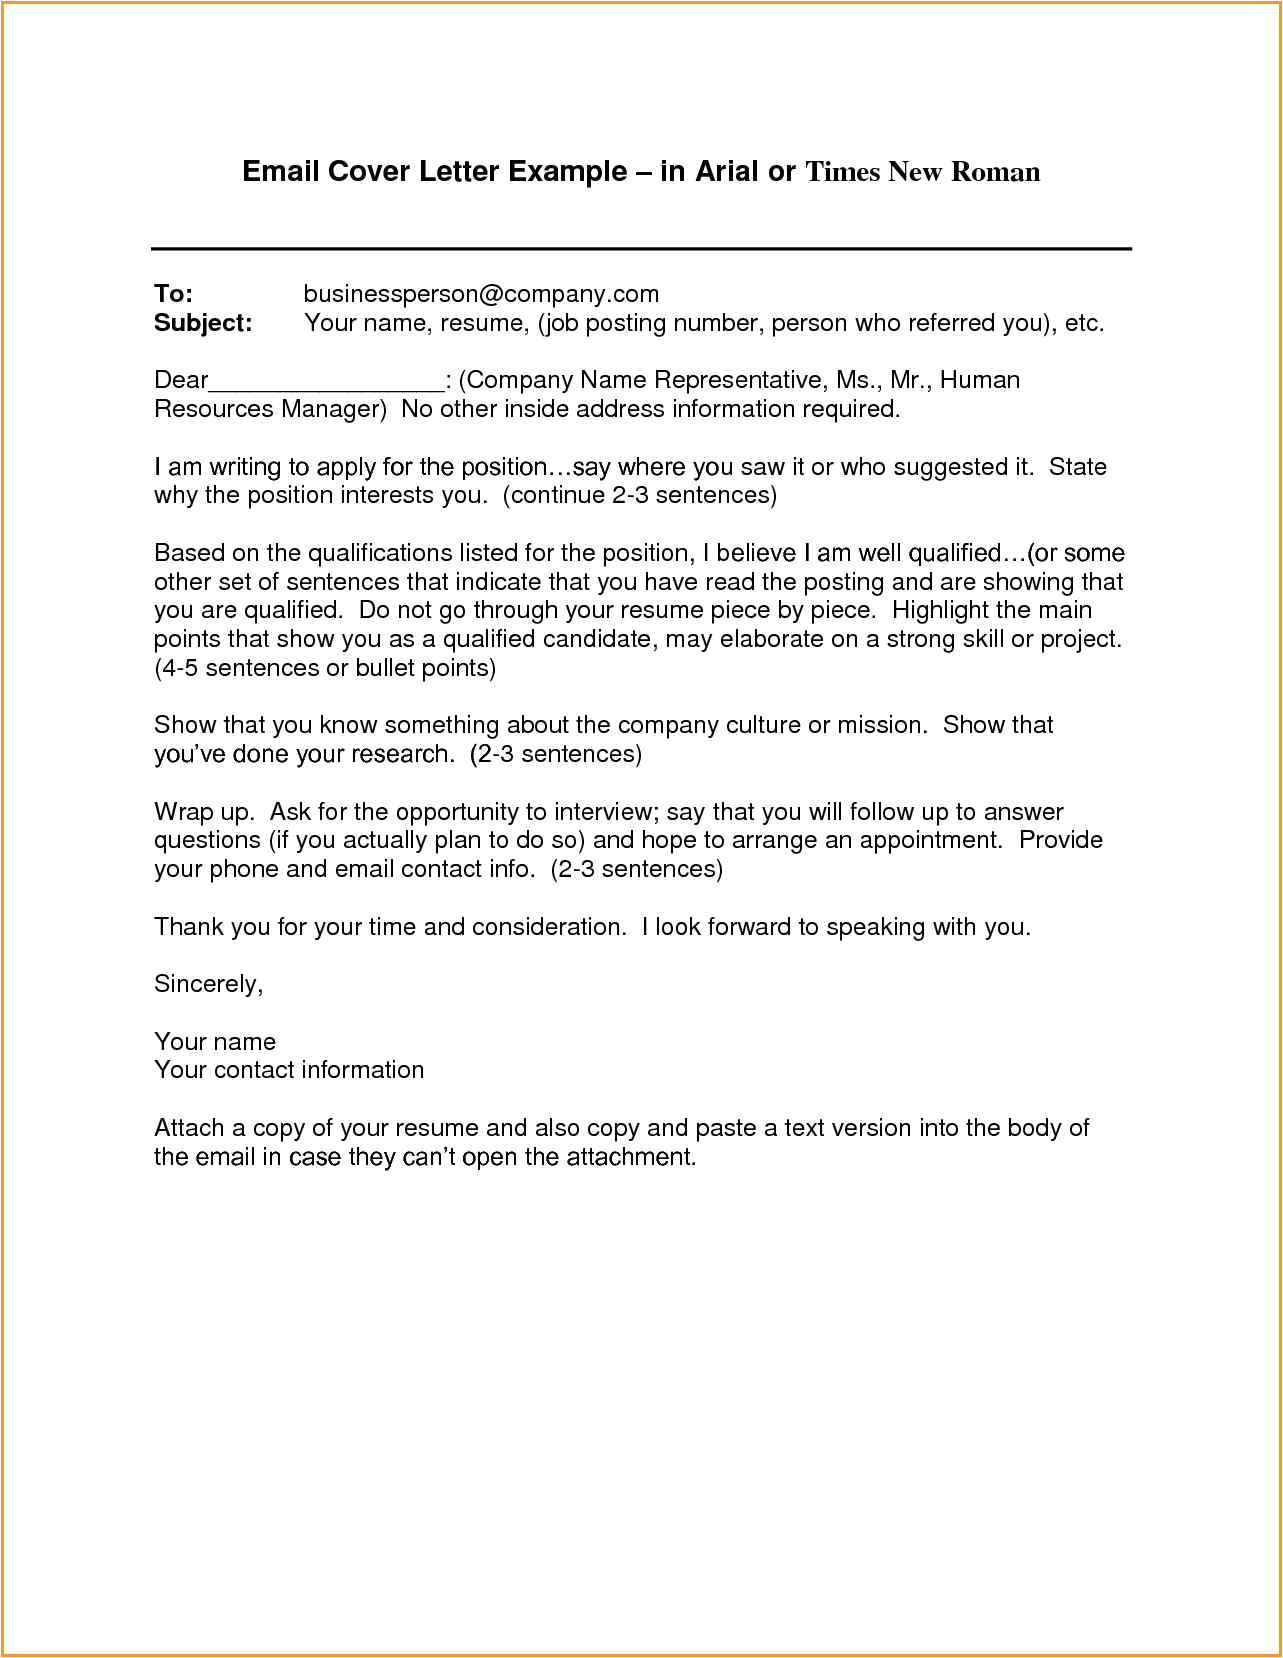 7 how to write email letter for job application